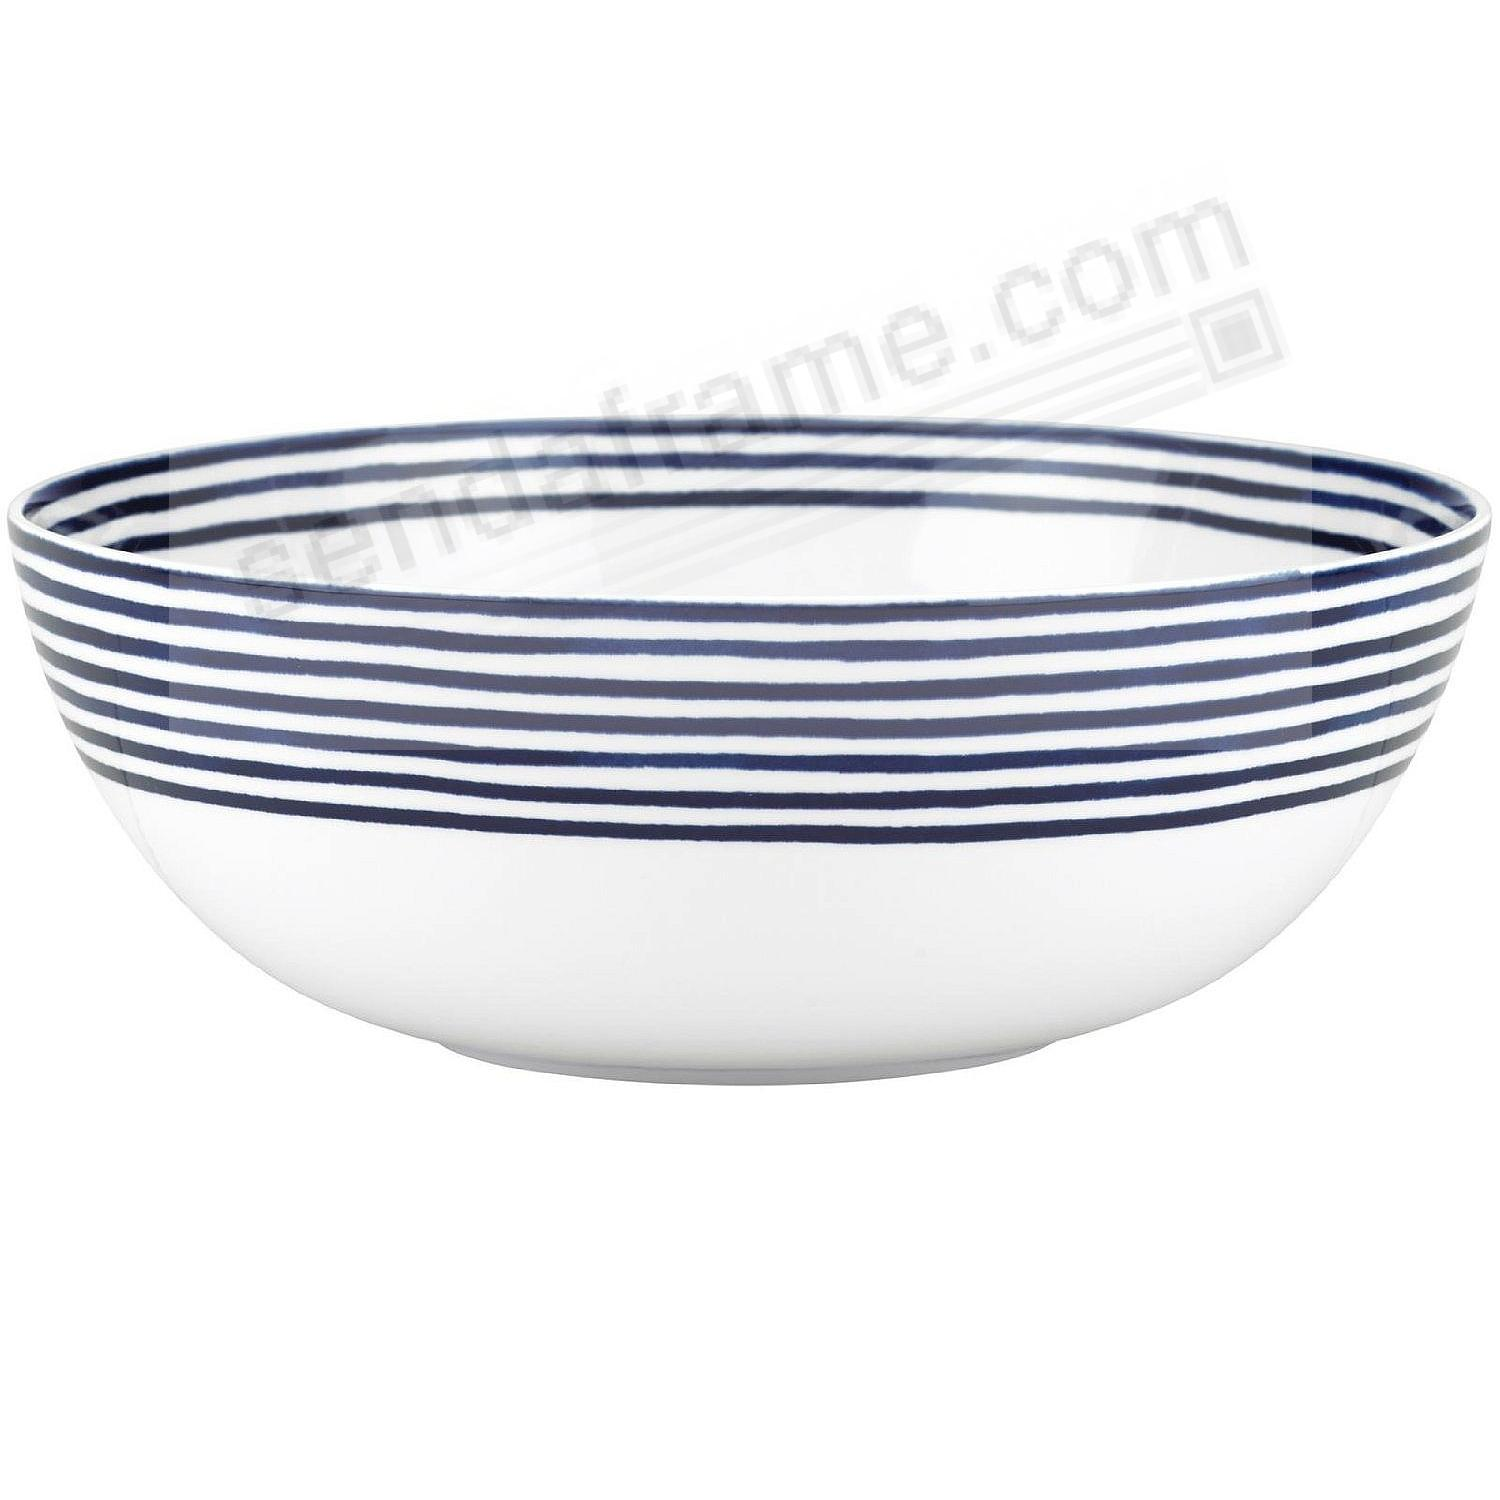 The CHARLOTTE STREET SERVING BOWL 10-1/4in by kate spade new york®